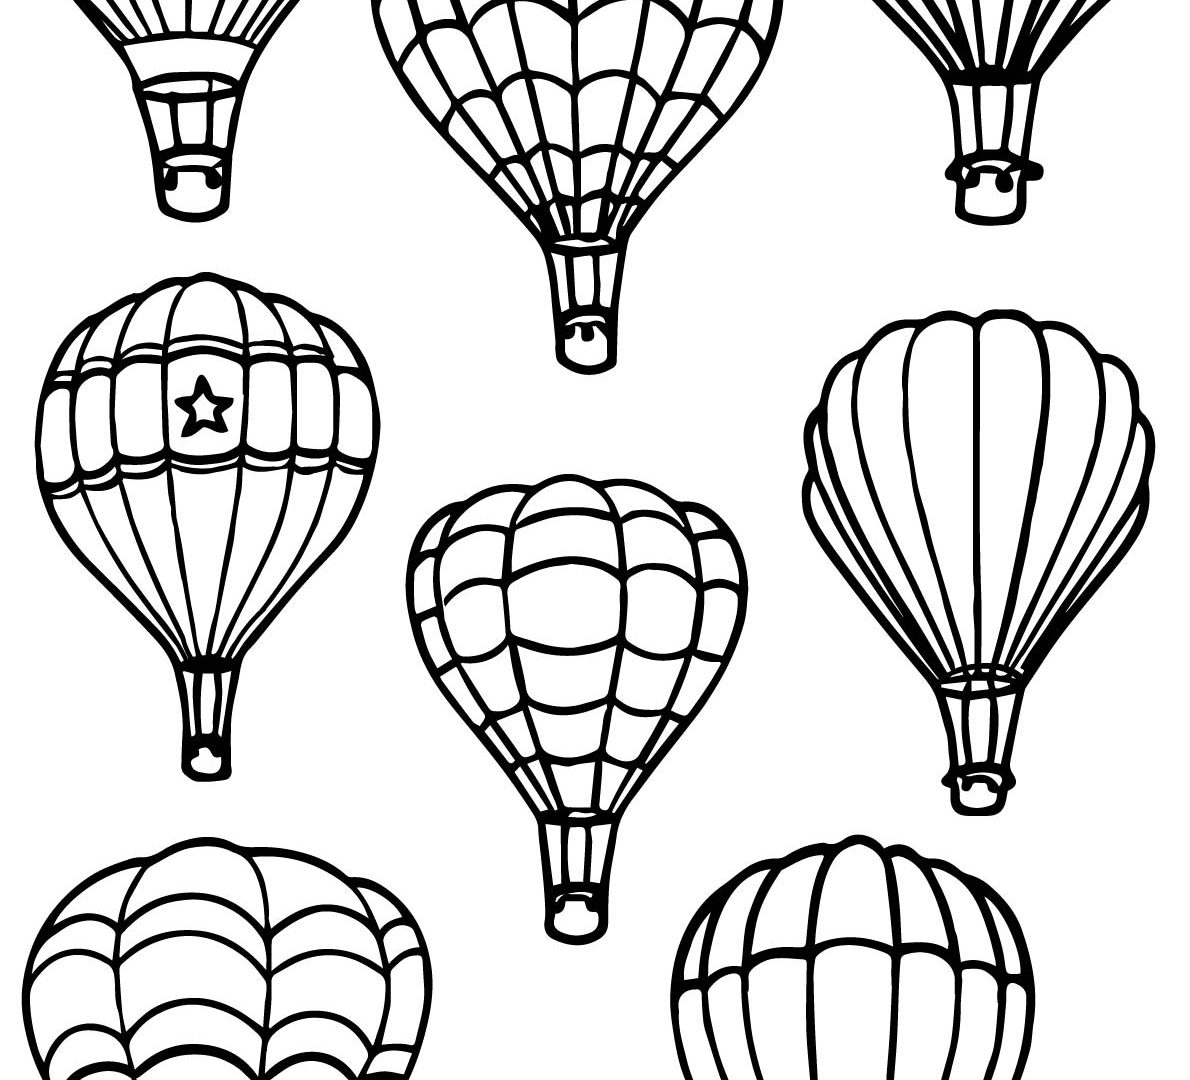 1190x1080 Best Hot Air Balloon Coloring Pages For Adult Images General